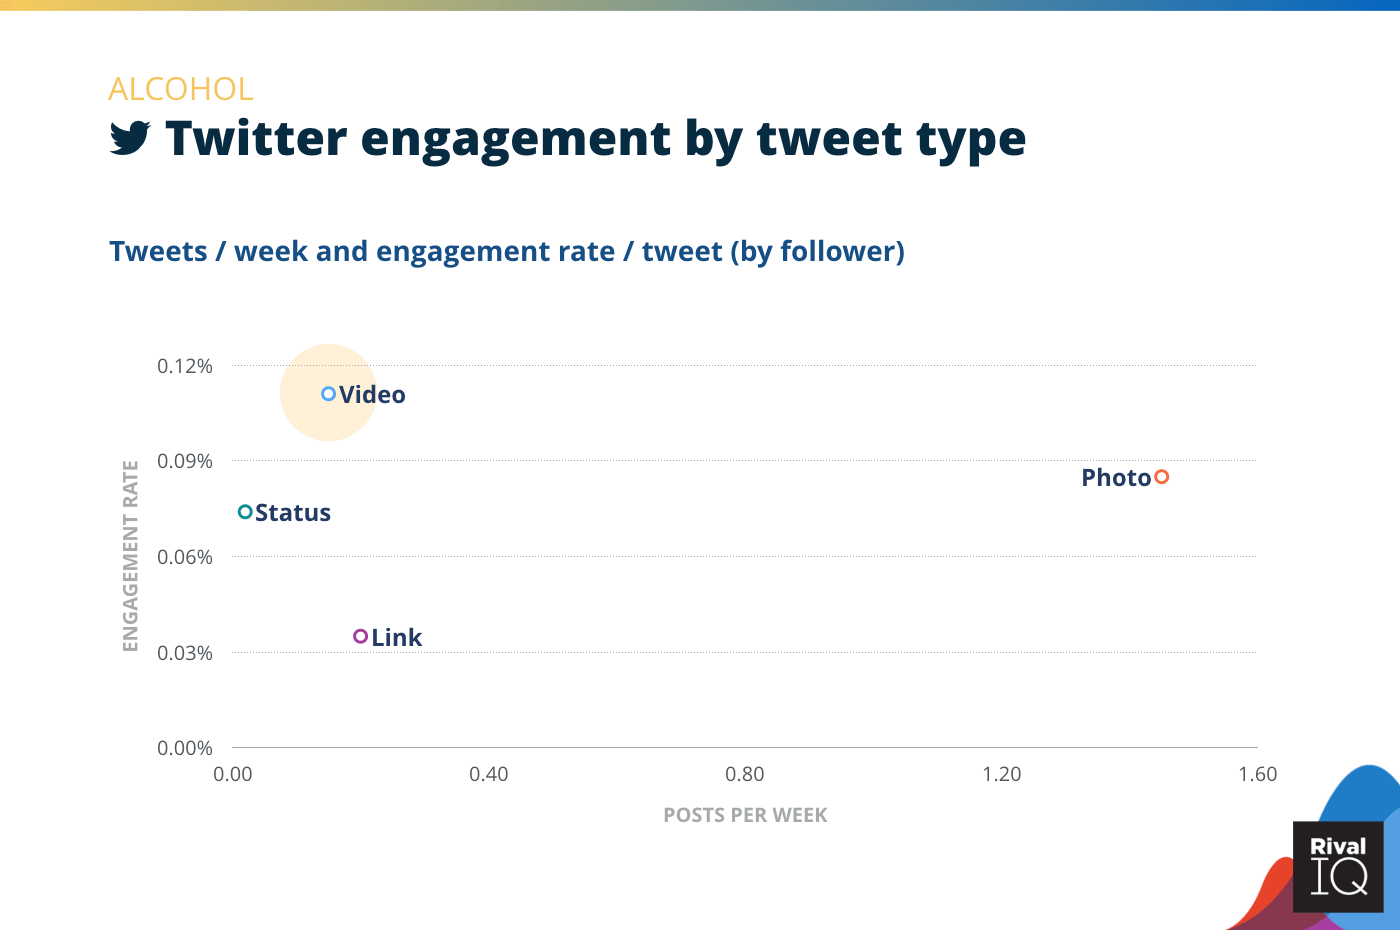 Chart of Twitter posts per week and engagement rate by tweet type, Alcohol